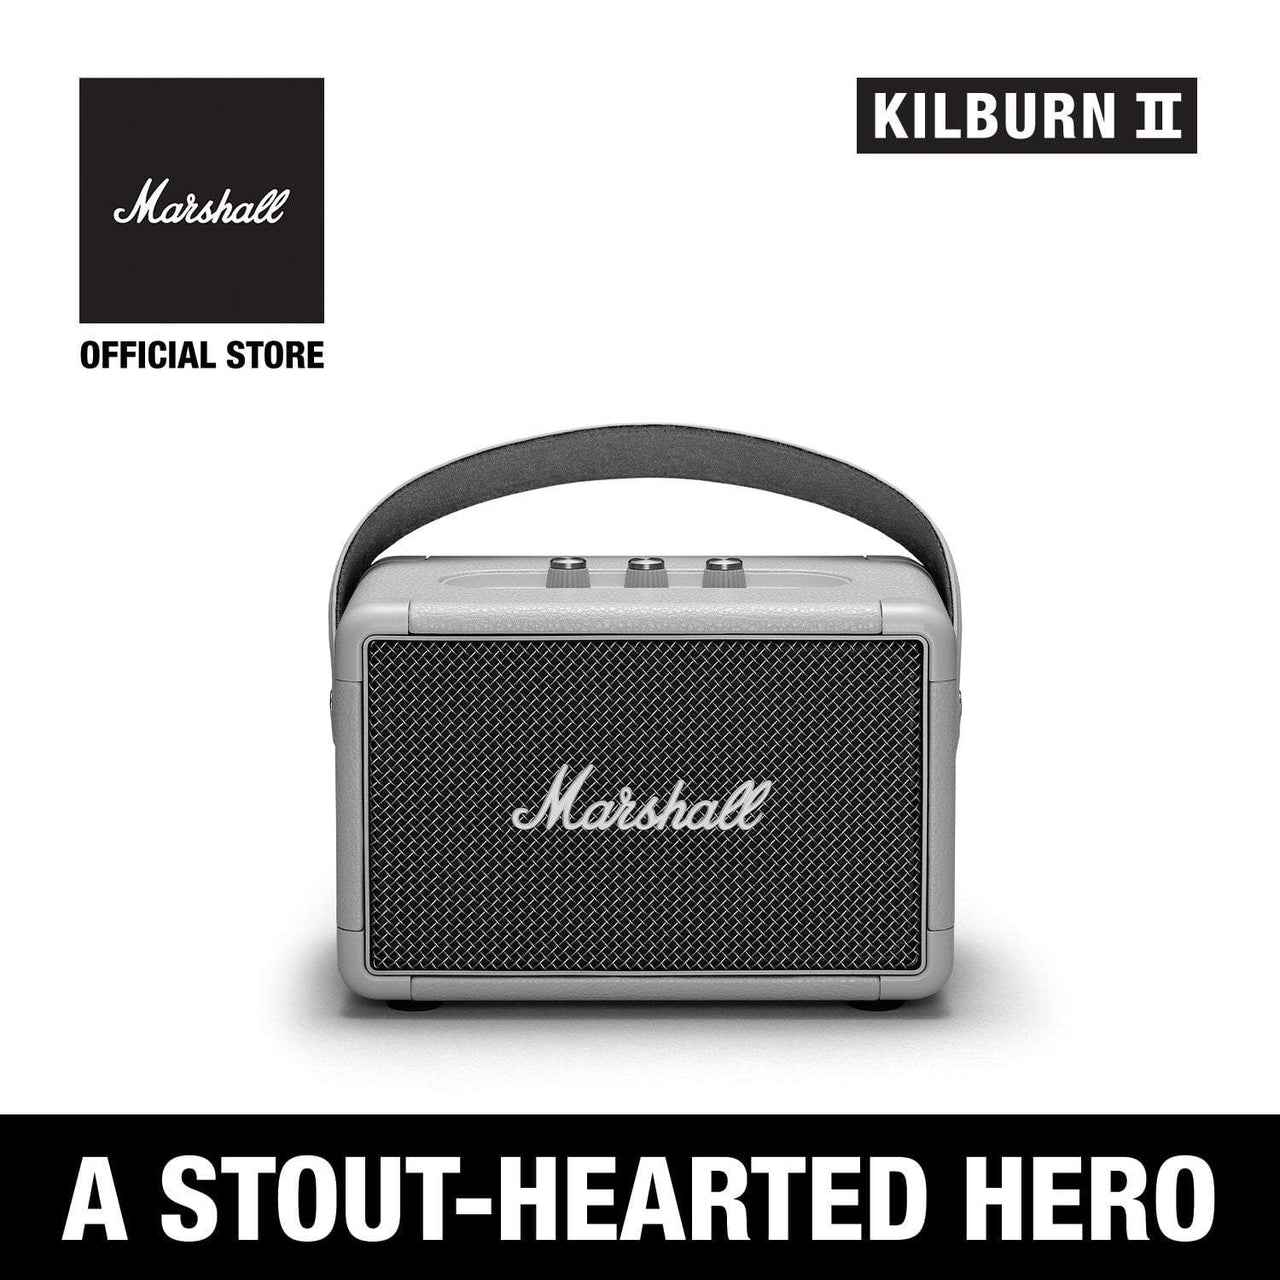 Kilburn II Grey [Exclusive Partner], Marshall, Marshall, ASH Asia